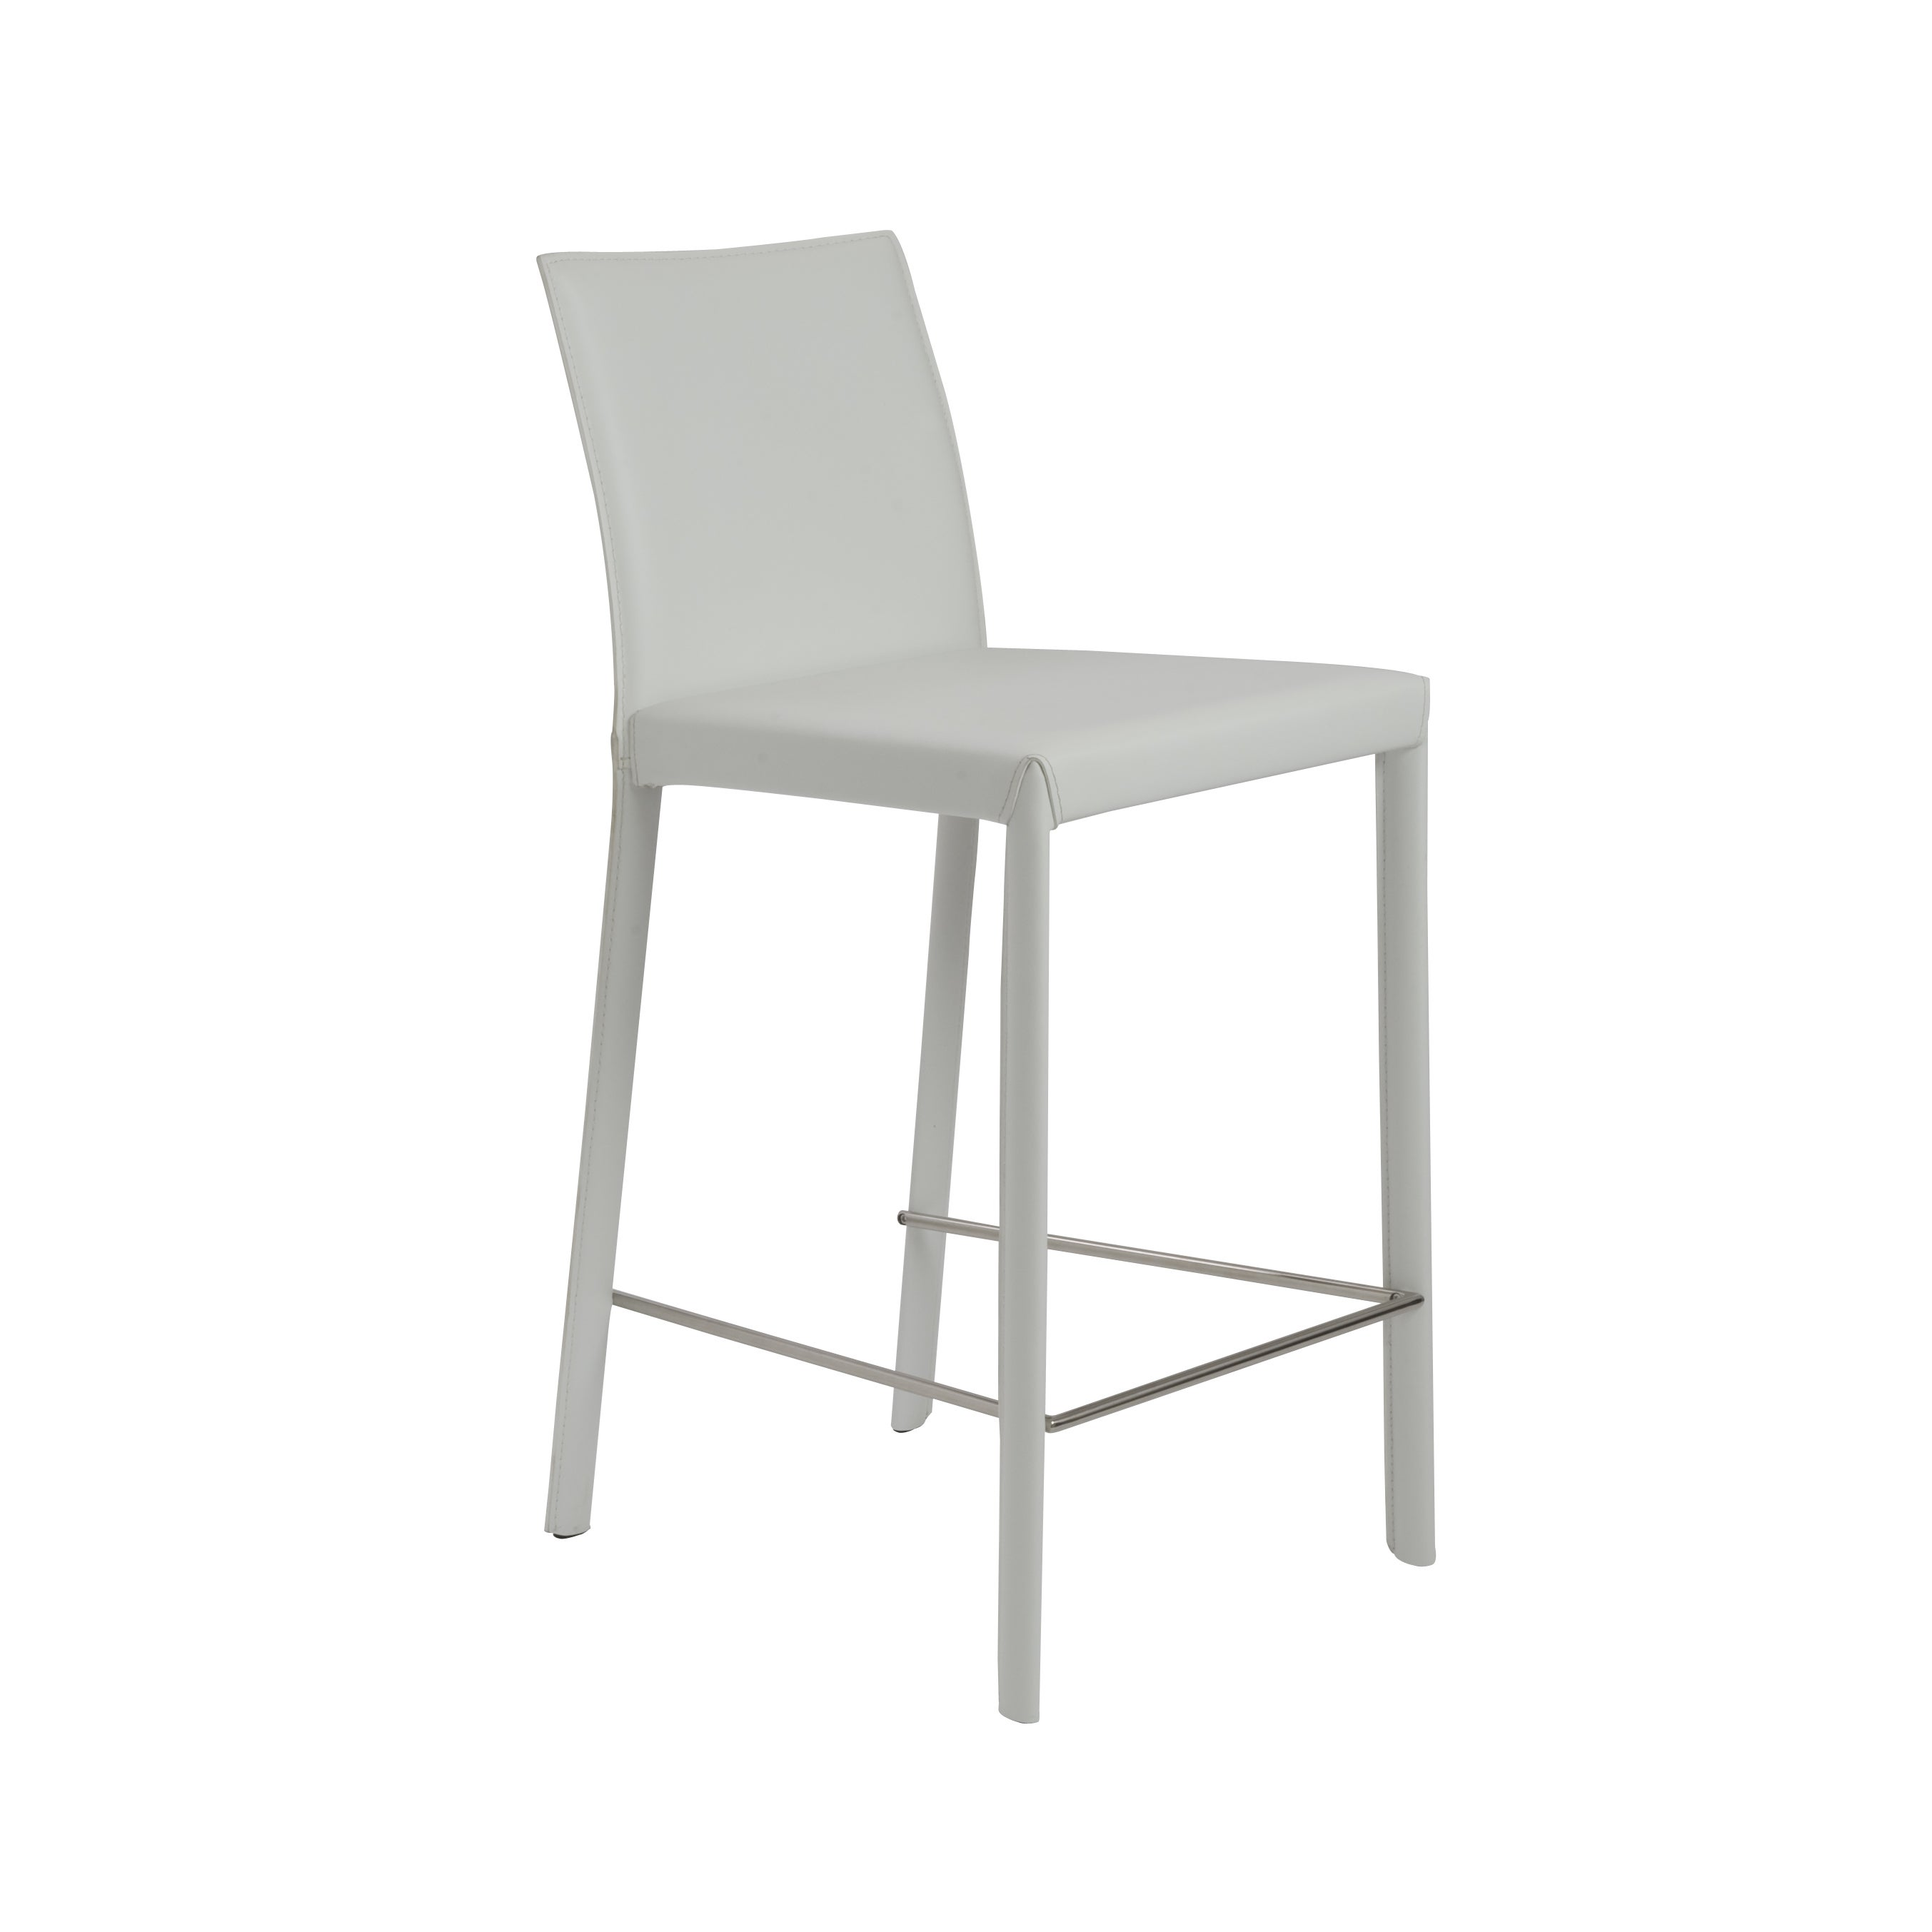 Shop Hasina 26 Inch White Stainless Steel Counter Stool Set Of 2